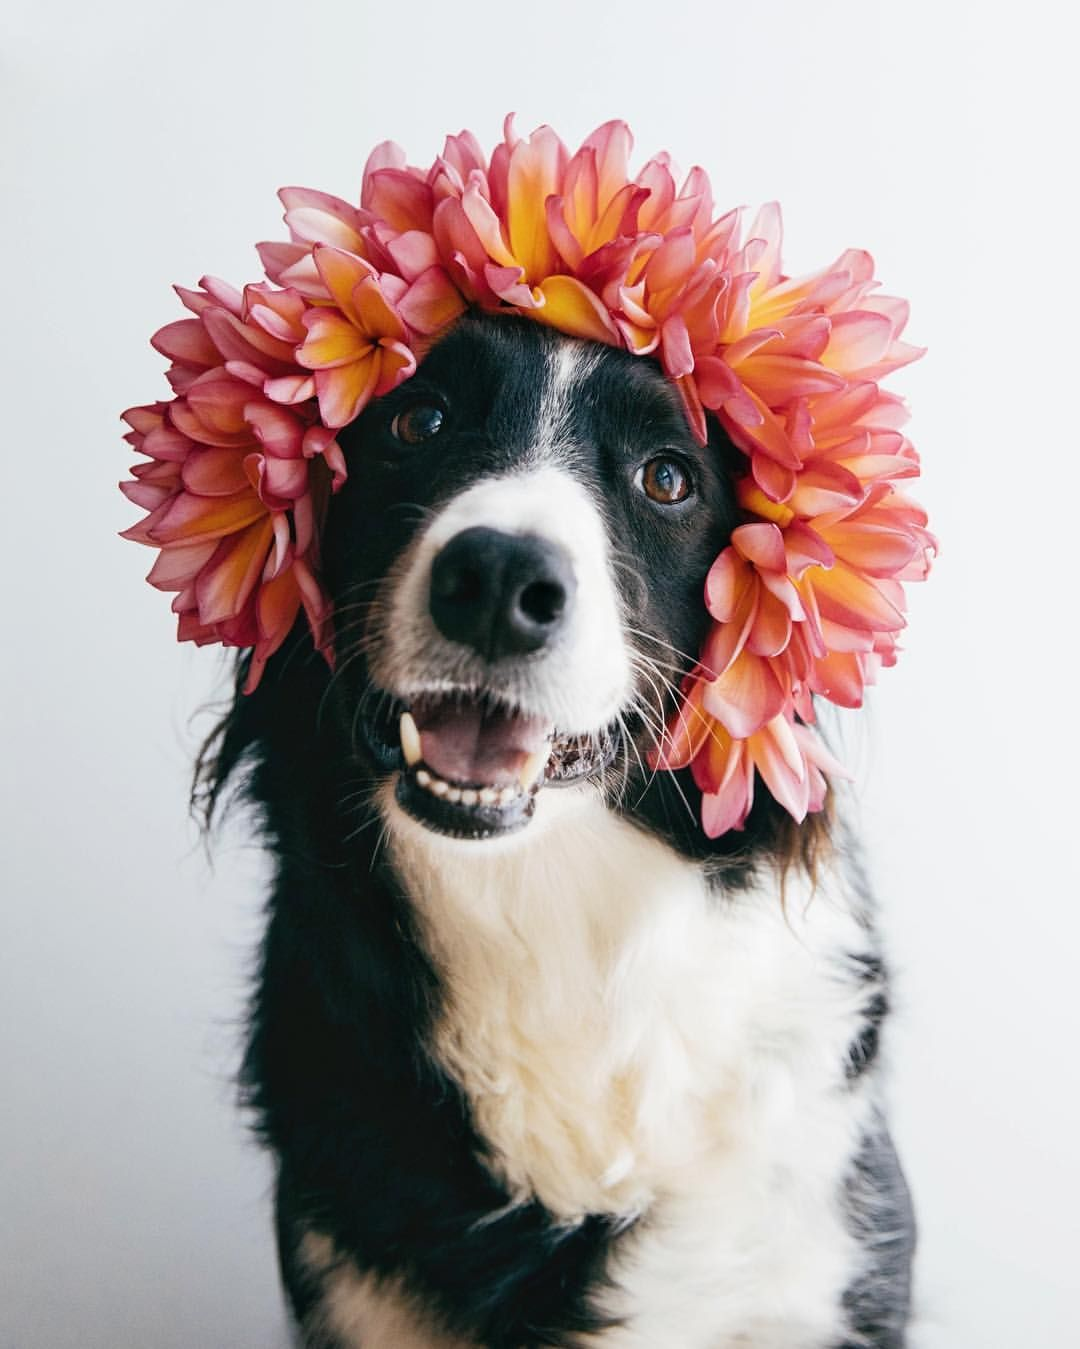 Incorporate a rescue pup into the styled shoot that is looking for a home!